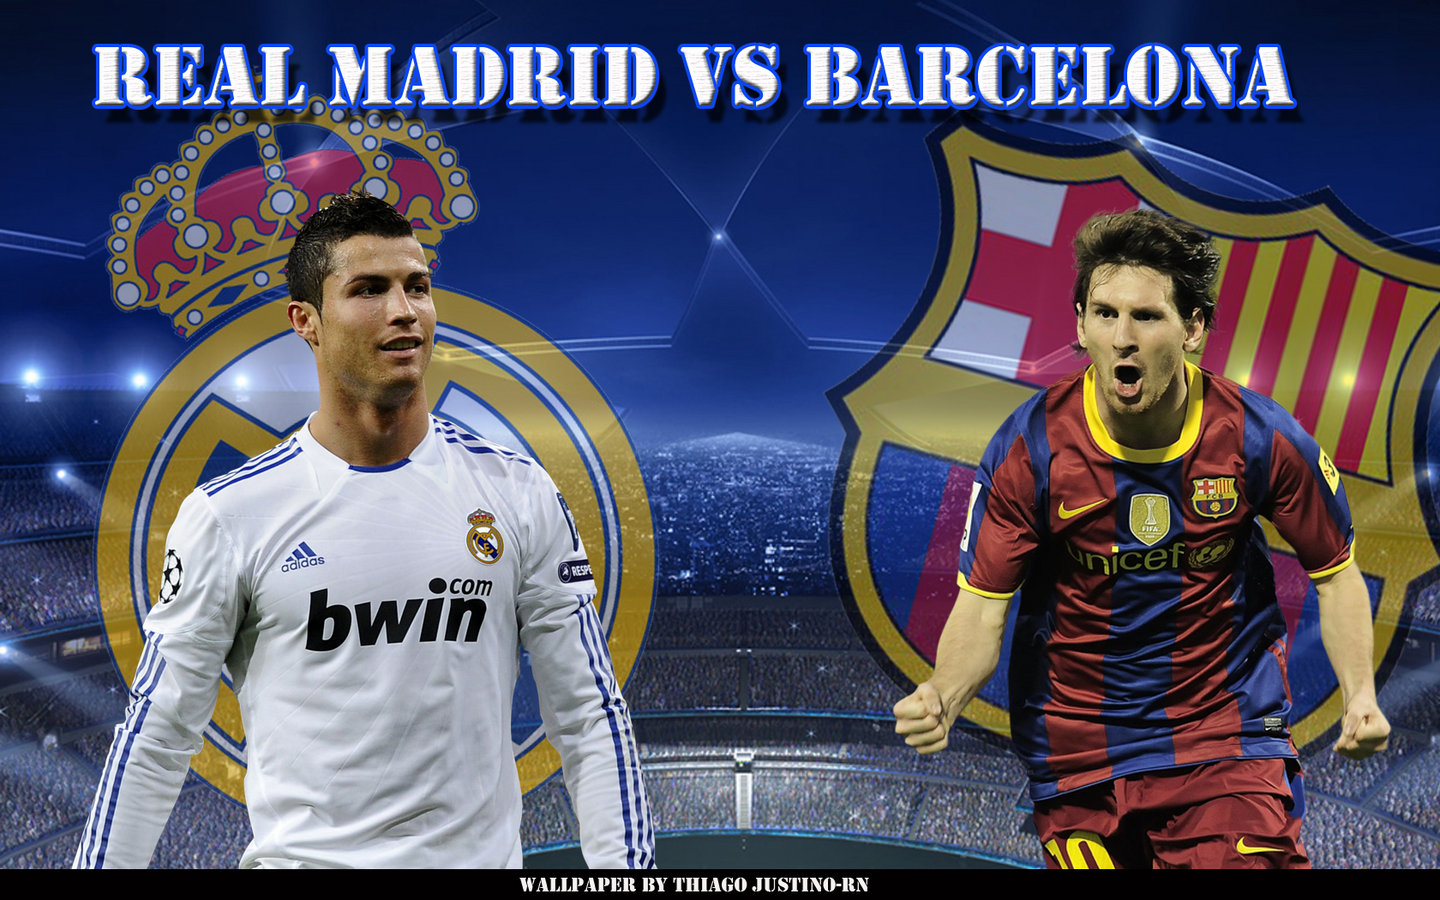 Real Madrid will face Barcelona in the Copa del Rey quarter-finals if